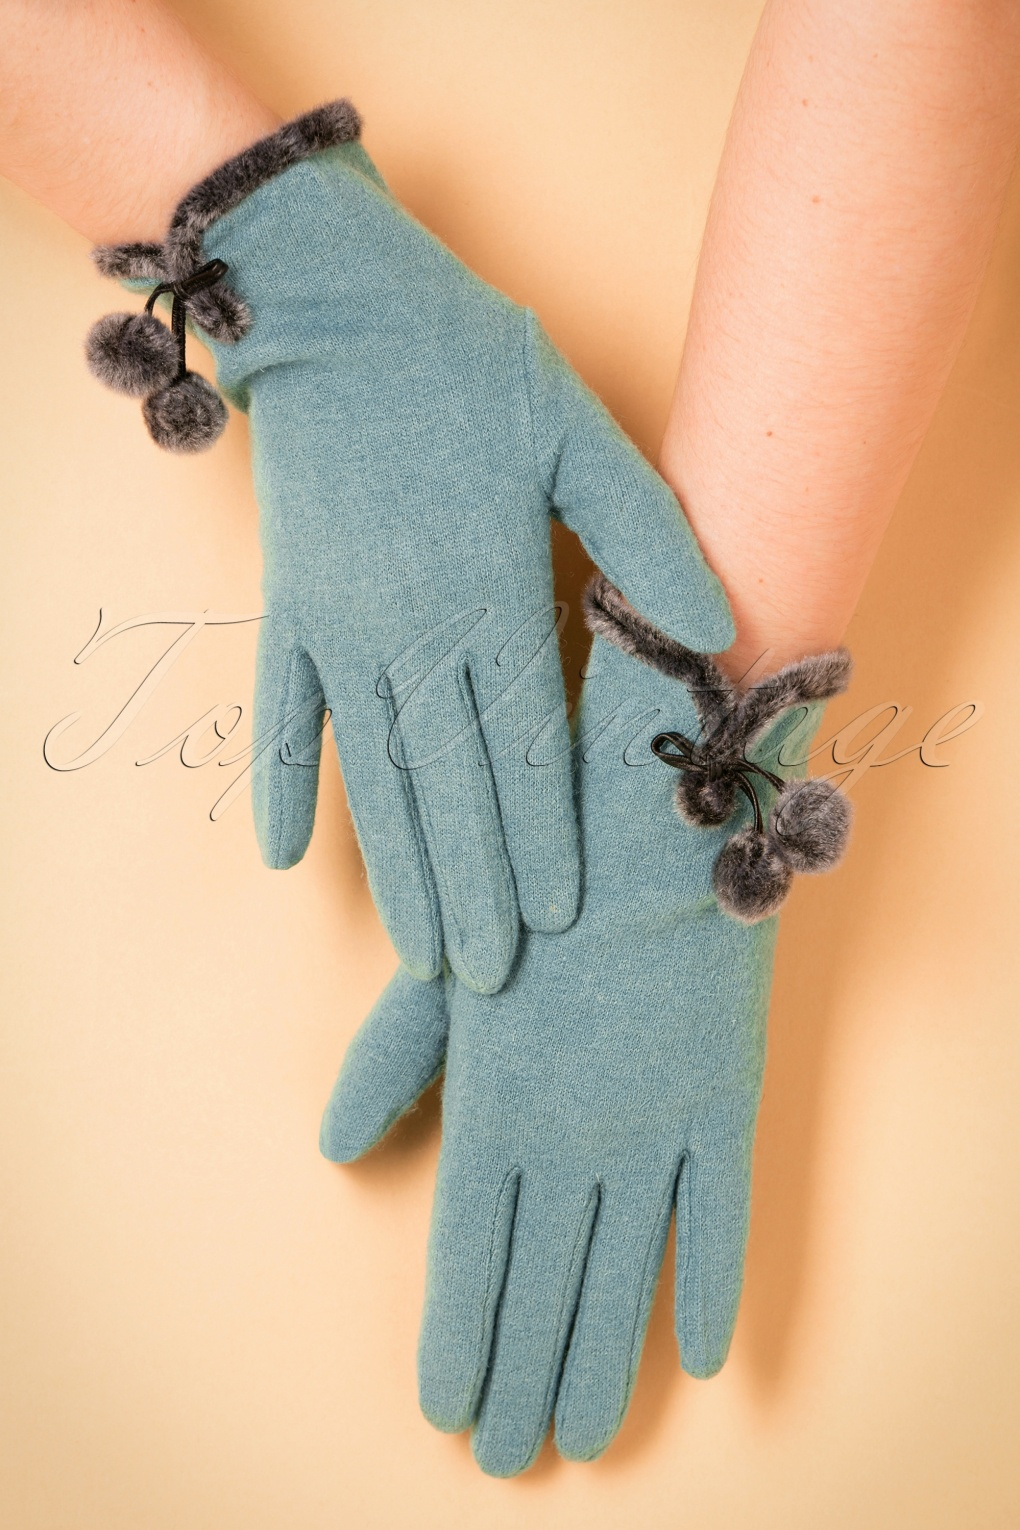 Vintage Style Gloves- Long, Wrist, Evening, Day, Leather, Lace 40s Betty Pom Pom Wool Gloves in Ice Blue £23.99 AT vintagedancer.com